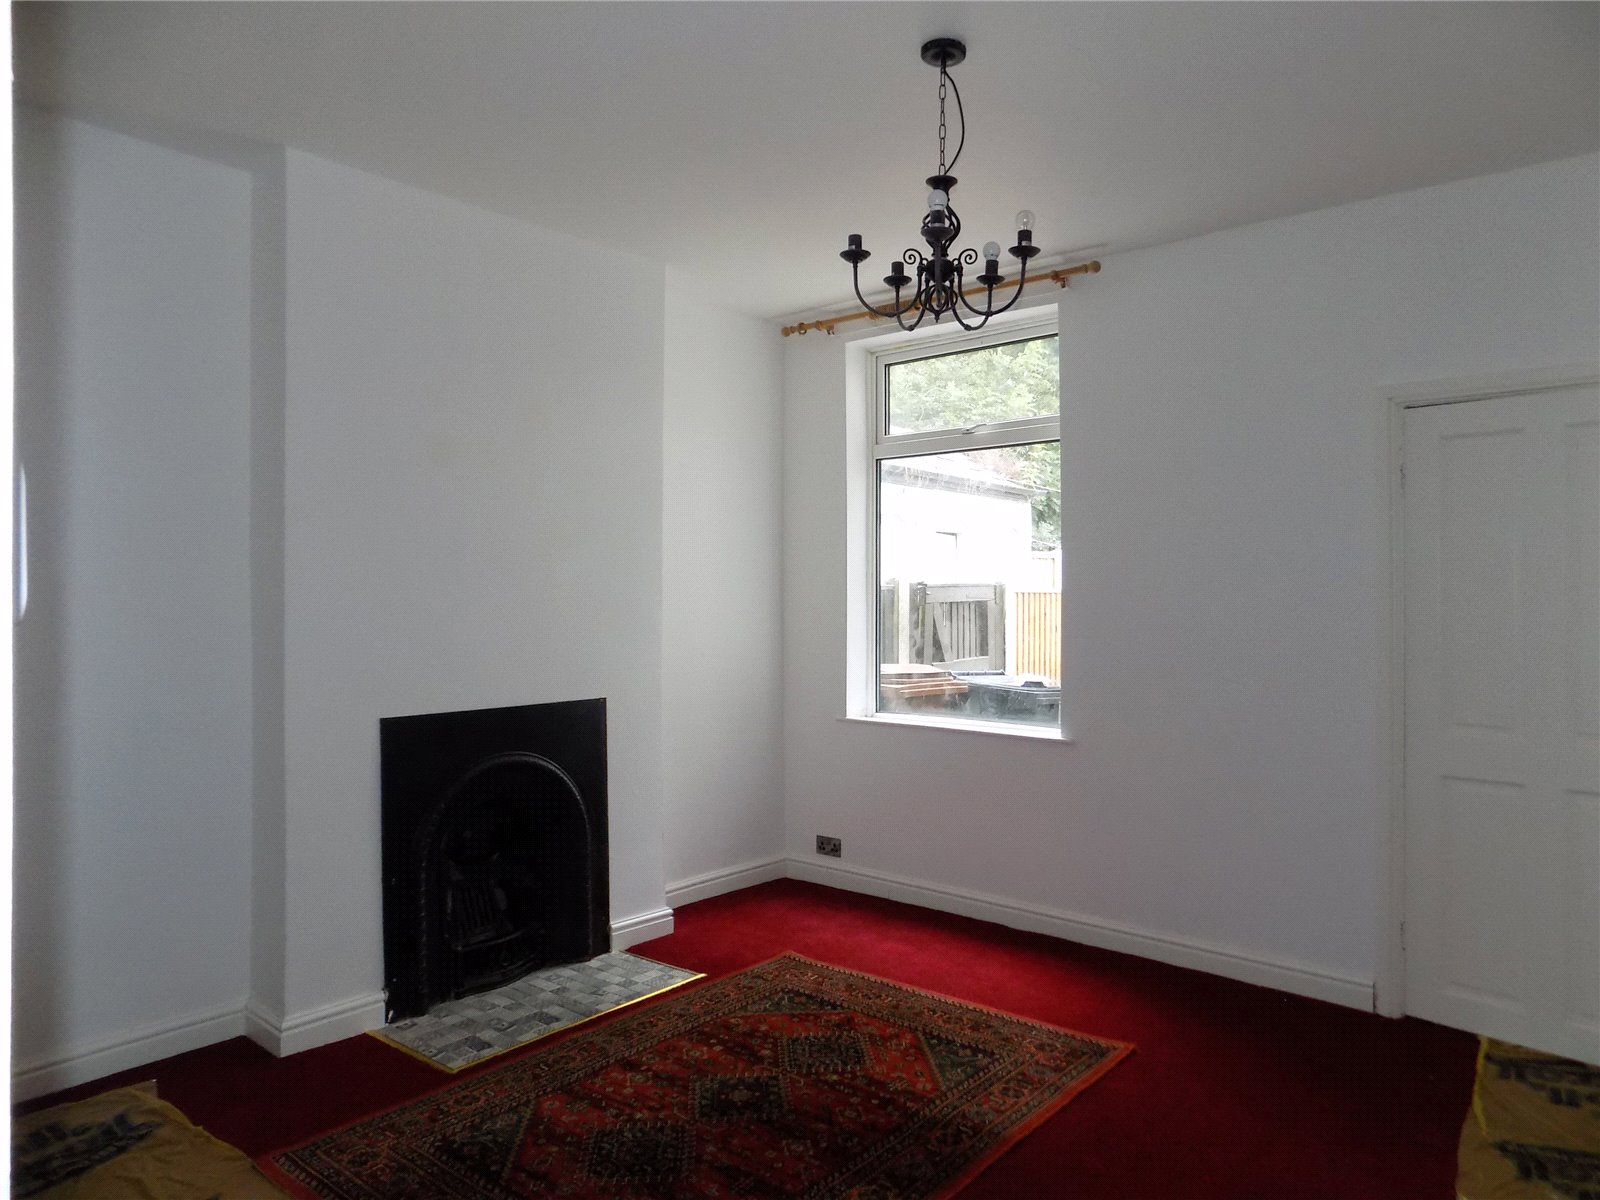 Whitegates Ilkeston 2 Bedroom House Sstc In Manners Road